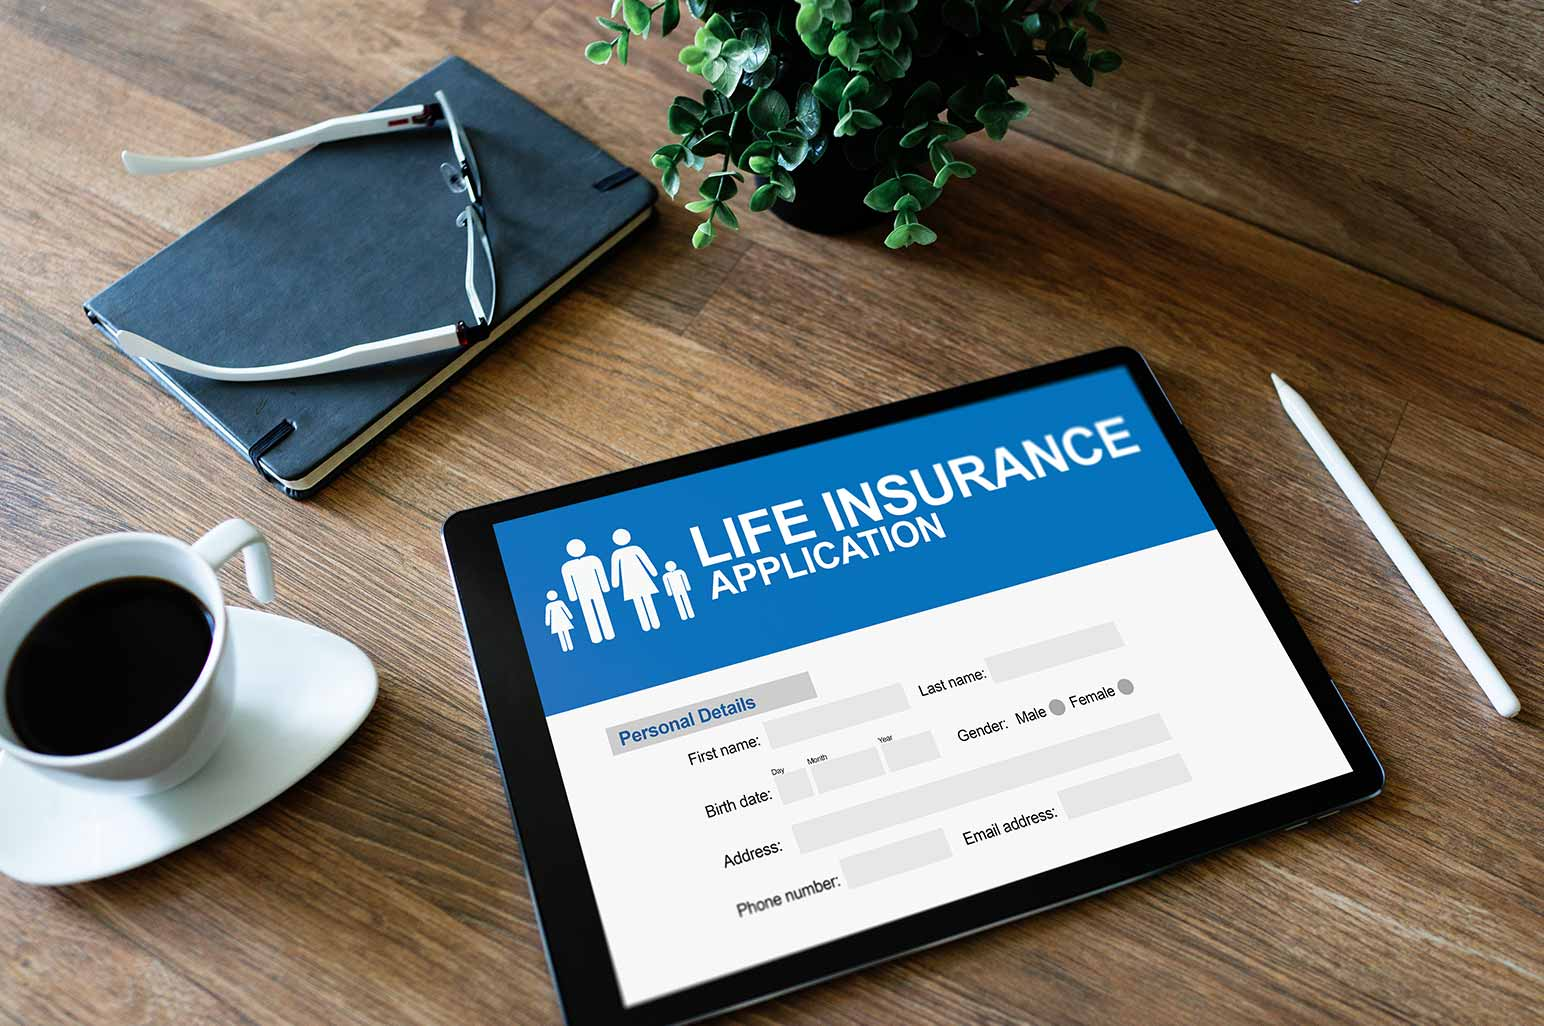 What Are The Basic Insurance Policies You Should Have